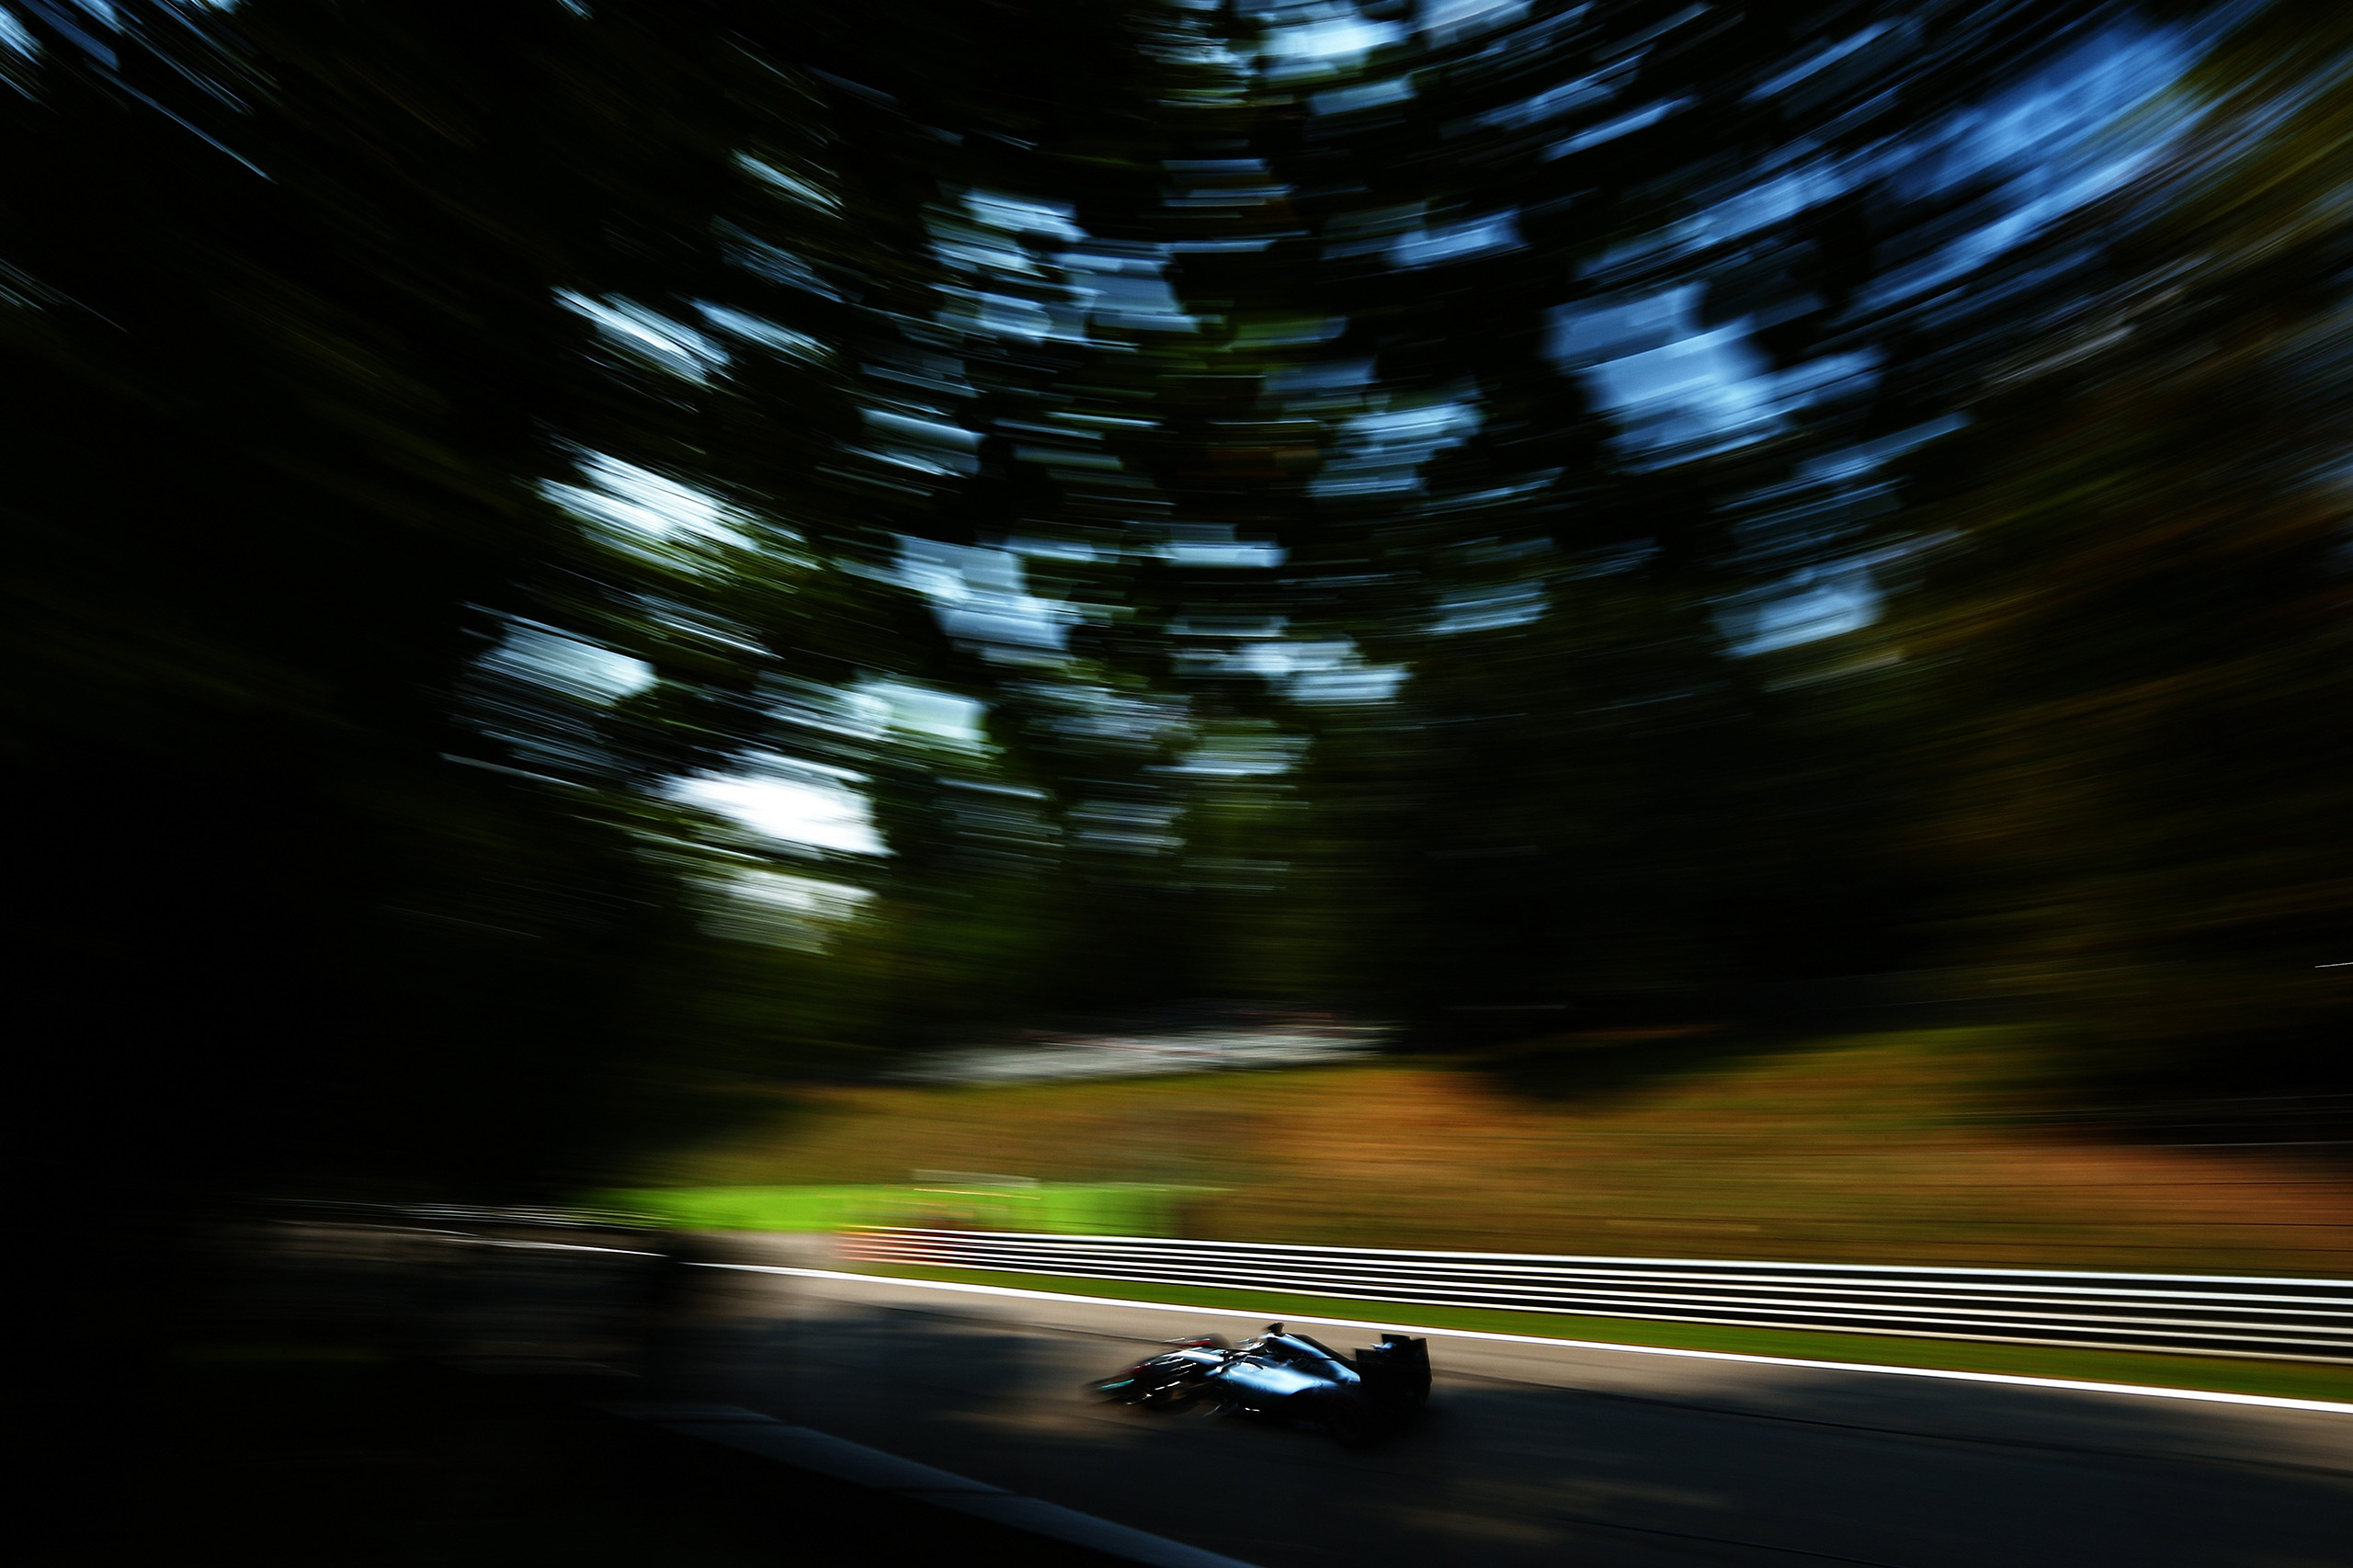 Lewis Hamilton of Great Britain driving the (44) Mercedes AMG Petronas F1 Team Mercedes F1 WO7 Mercedes PU106C Hybrid turbo on track during qualifying for the Formula One Grand Prix of Italy at Autodromo di Monza in Monza, Italy, on Sept. 3, 2016.